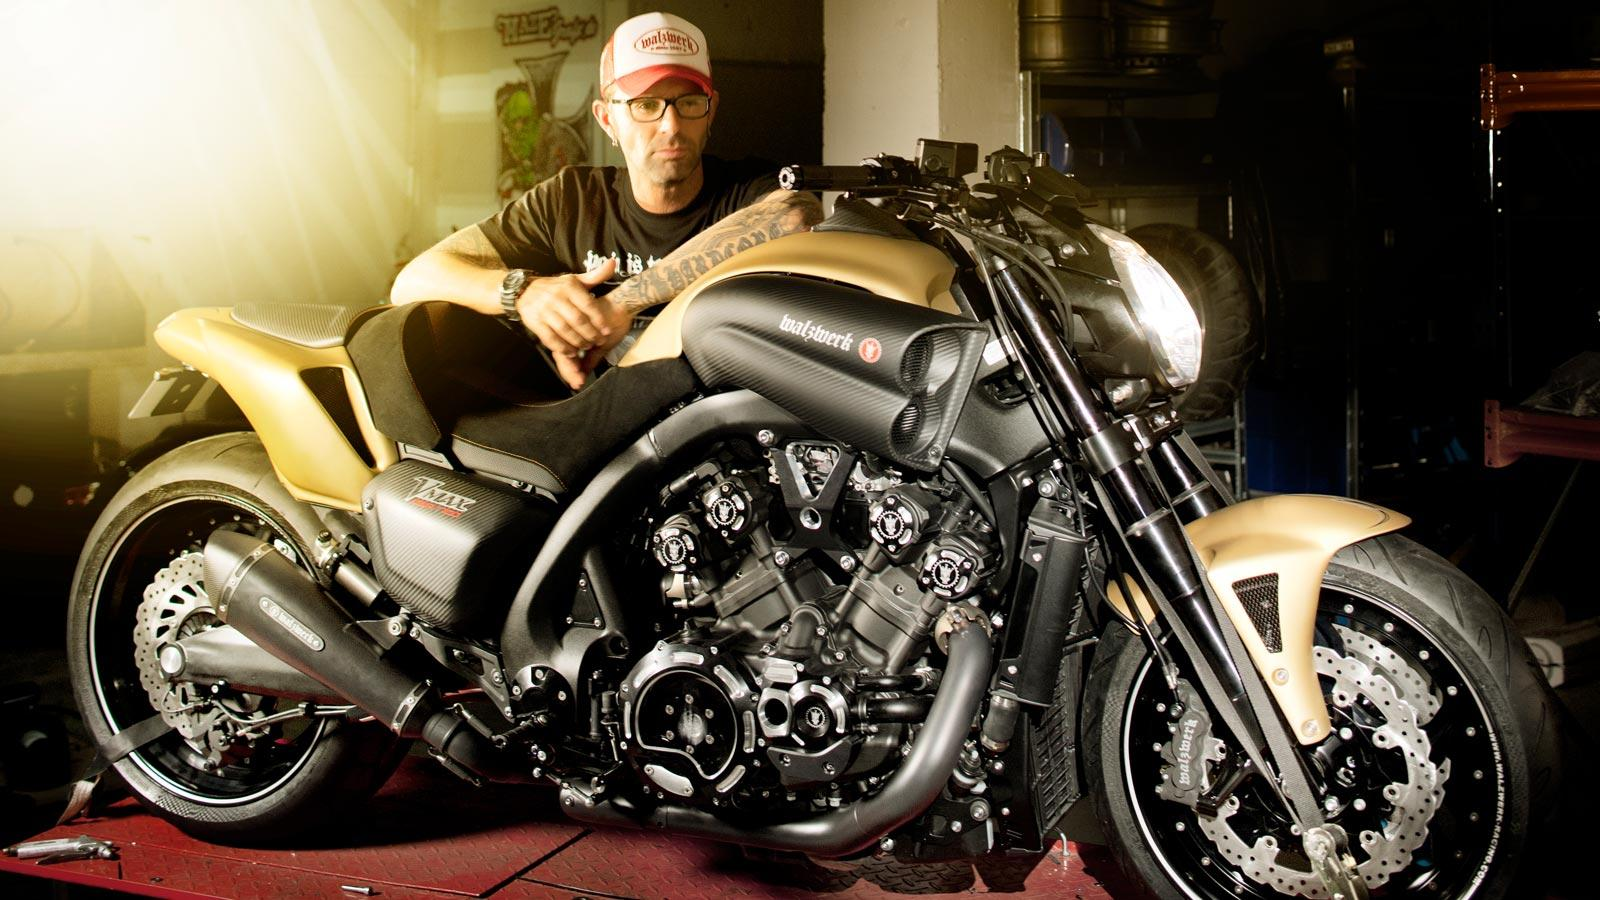 2012 Yamaha V-MAX Hyper Modified By Marcus Walz | Top Speed